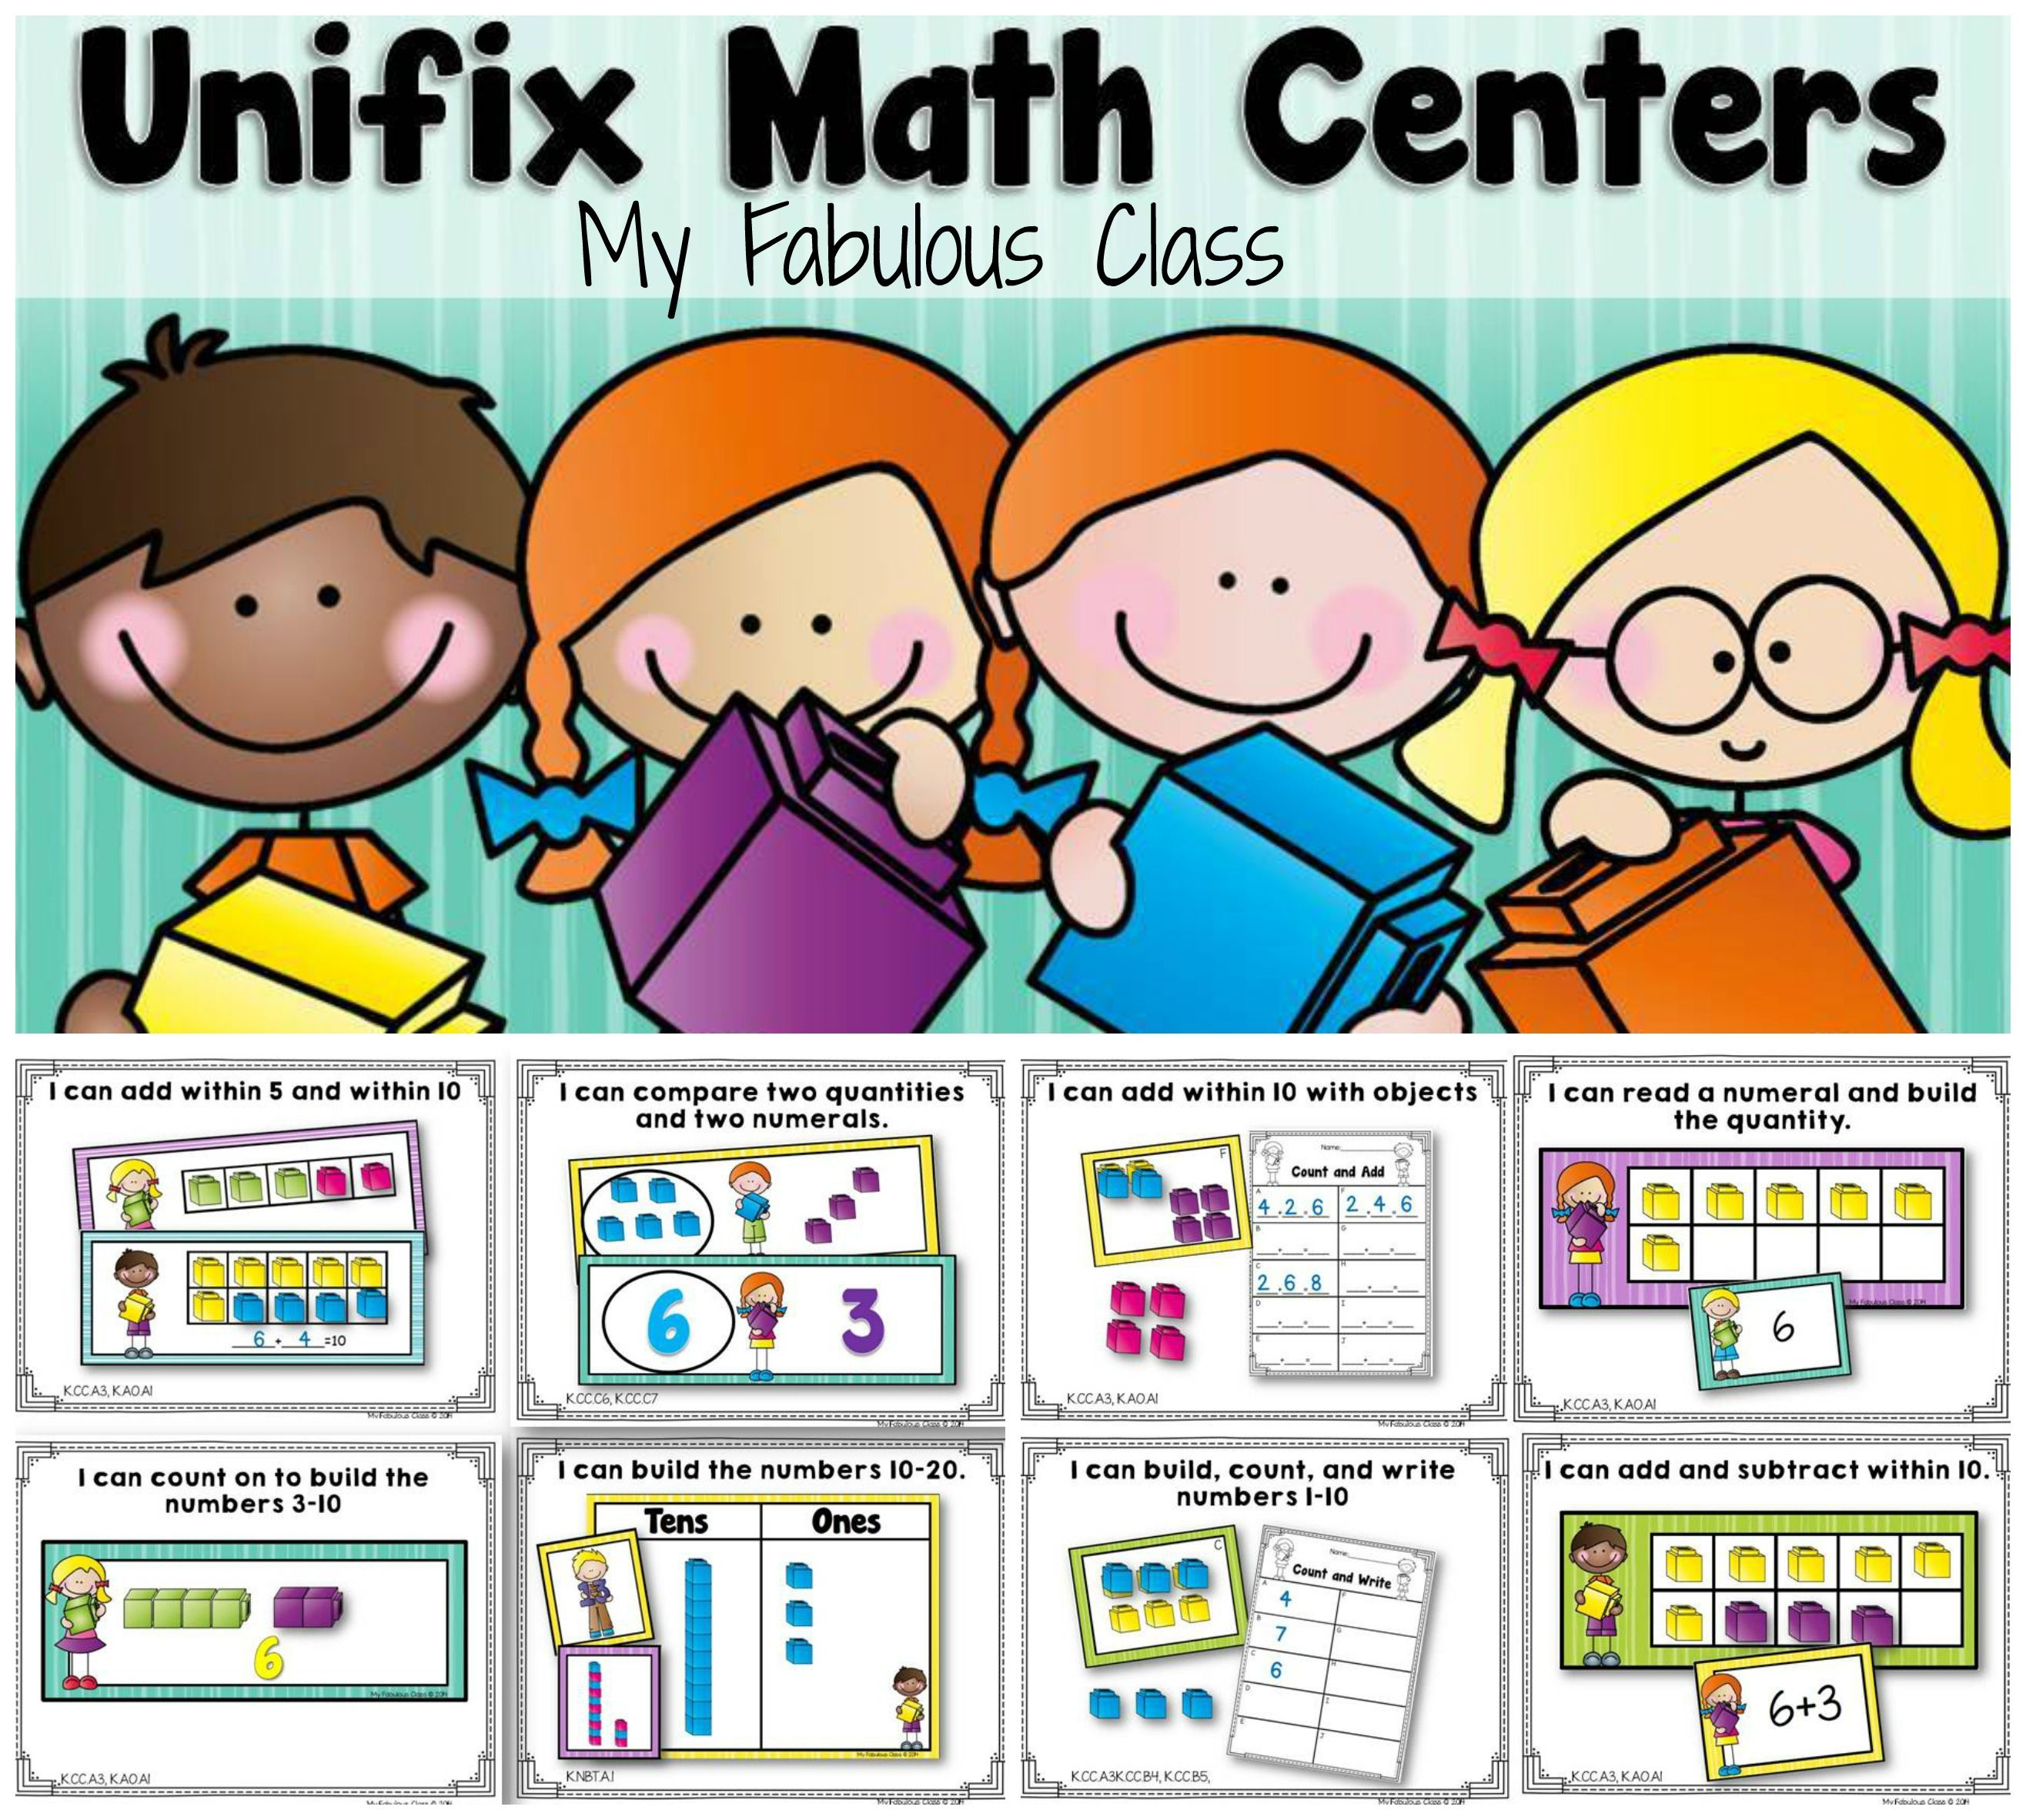 Unifix Cube Math Centers For Kindergarten 8 Differentiated Centers That Can Be Used All Year